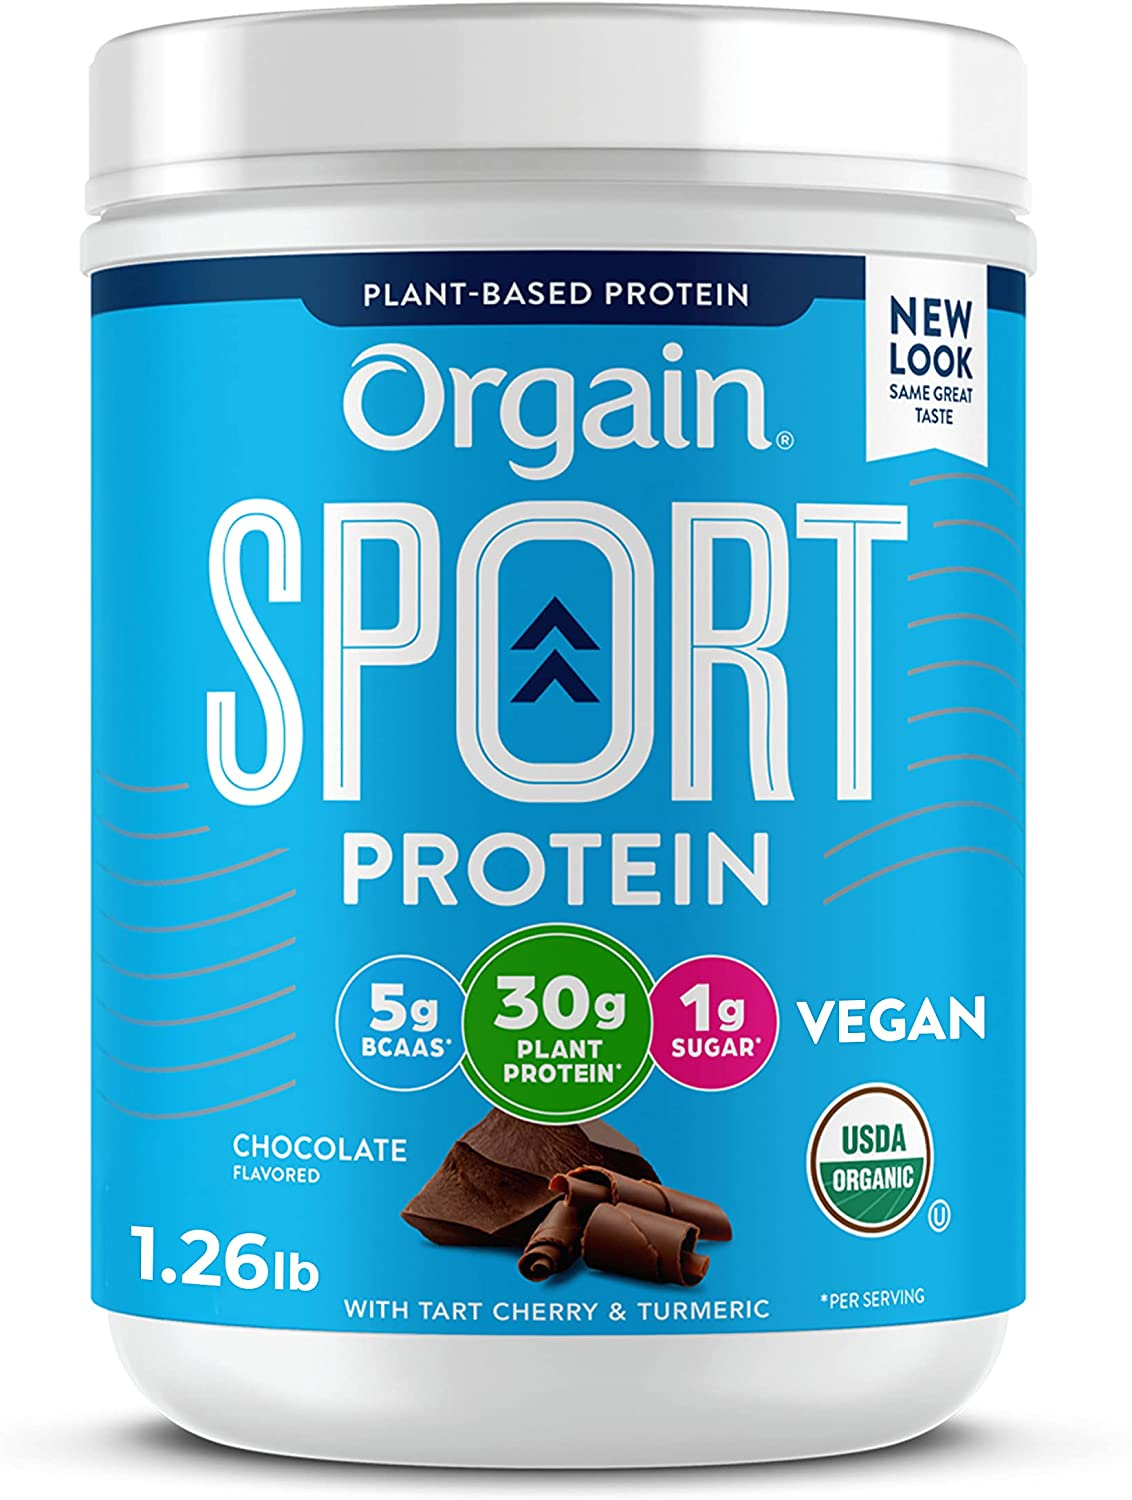 Orgain Chocolate Sport Plant-Based Protein Powder, Made with Organic Turmeric, Ginger, Beets, Chia Seeds, Cherry, Brown Rice and Fiber, Vegan, No Gluten, Soy or Dairy, Non GMO - 1.26 lbs